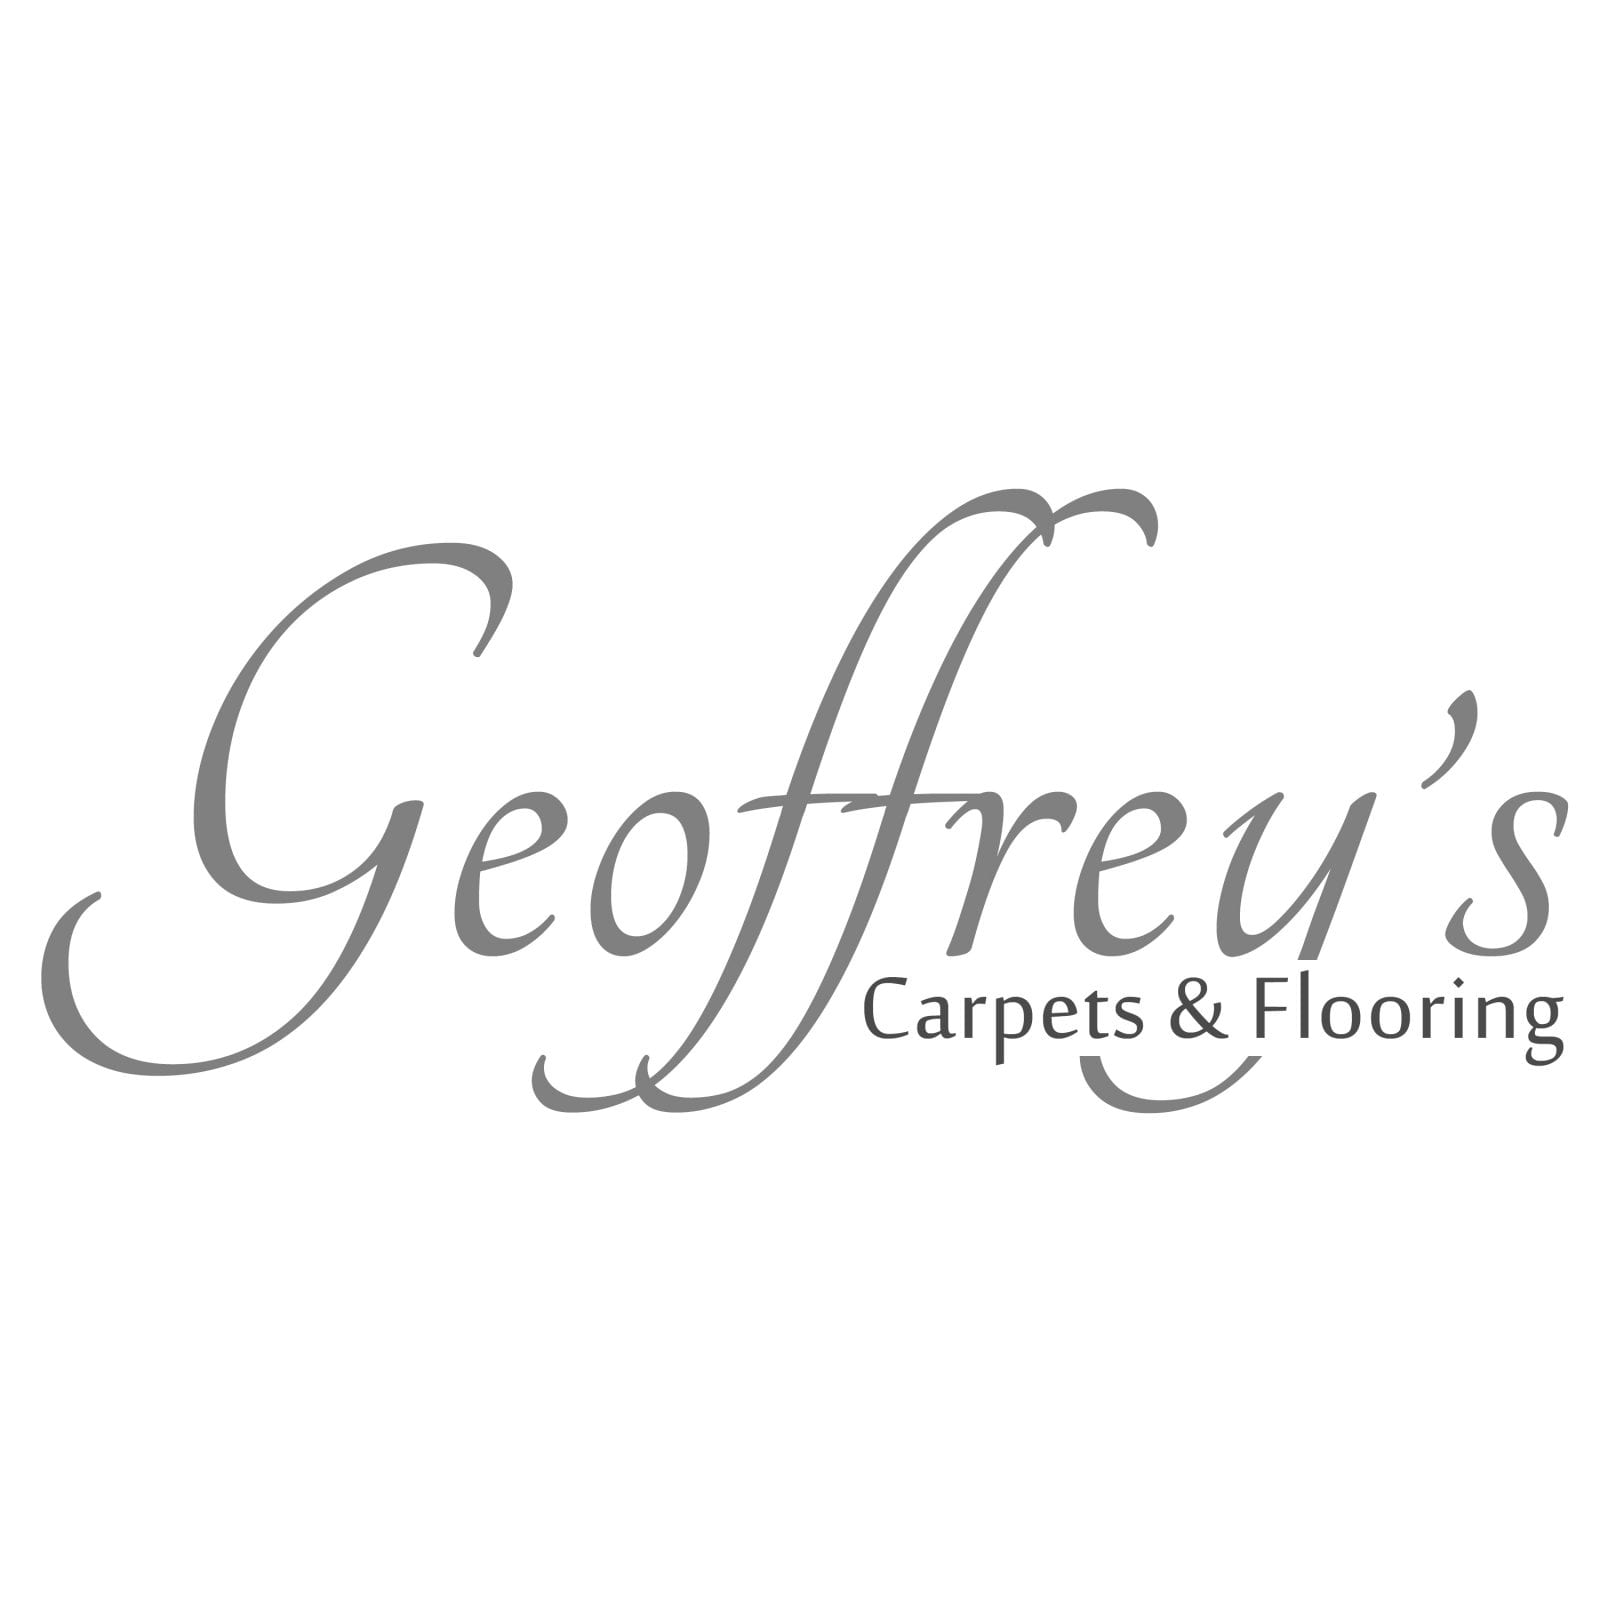 Geoffreys Carpets and Flooring